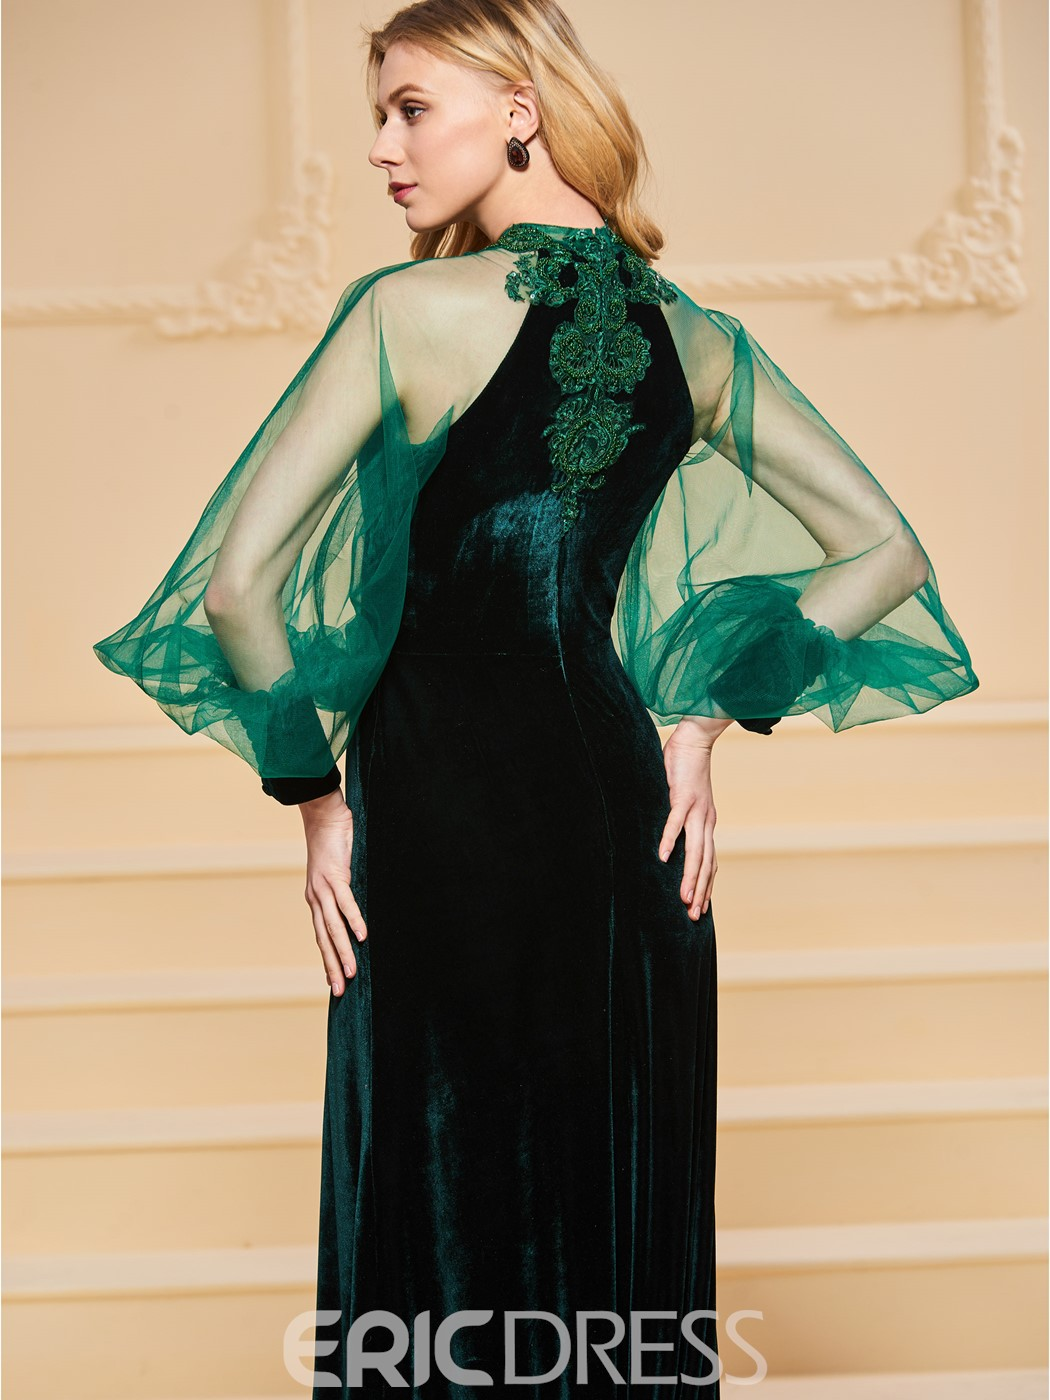 Ericdress A Line Velvet Applique Beaded Long Sleeve Evening Dress